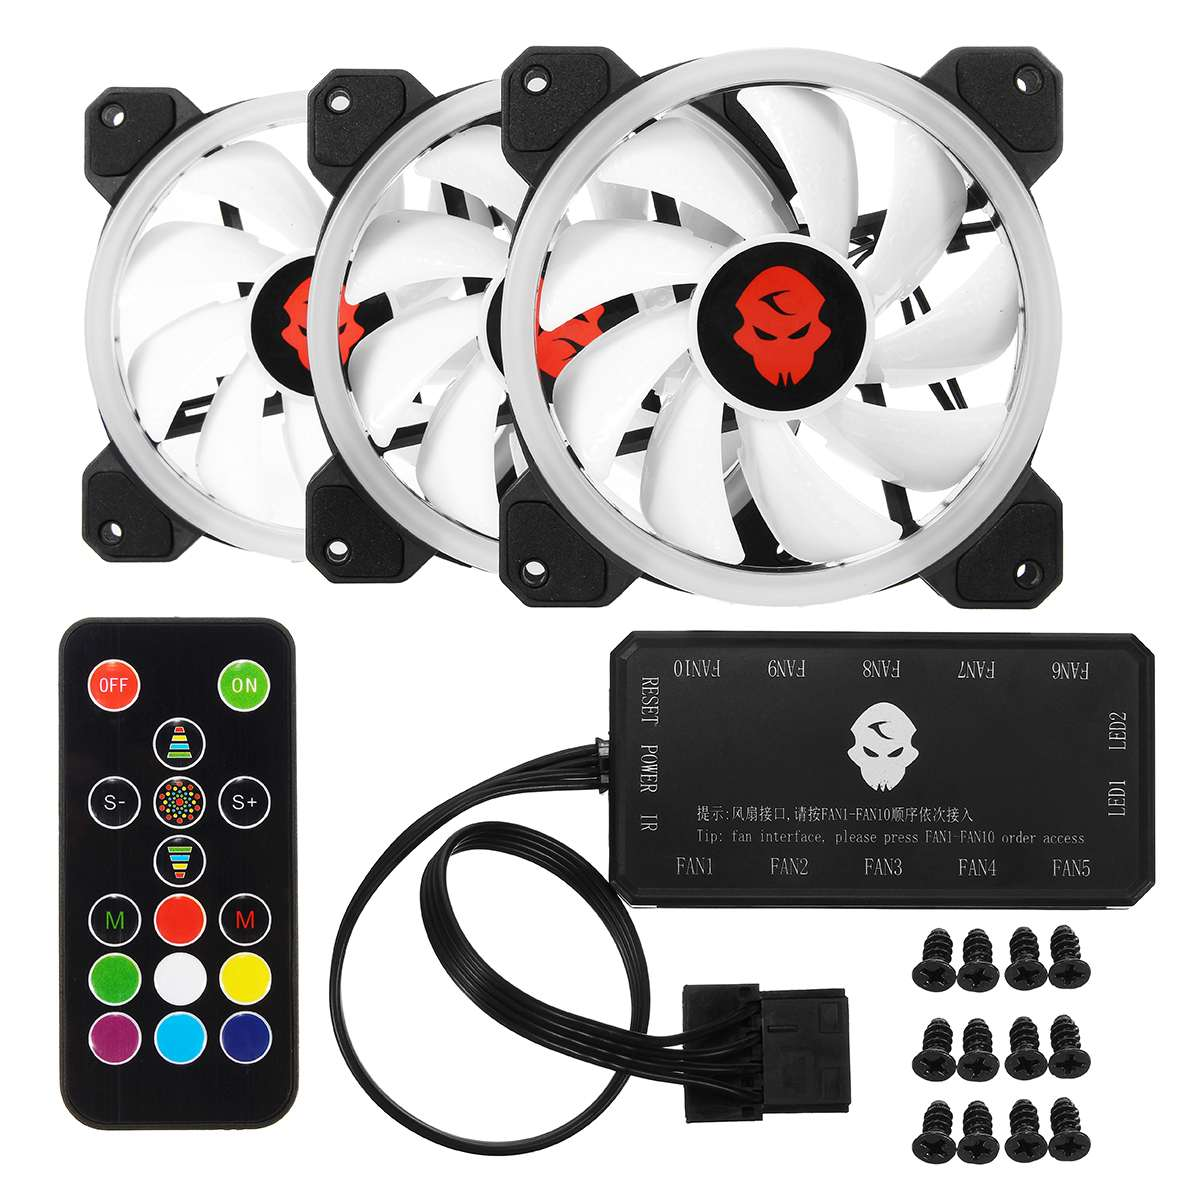 S SKYEE Computer Case Cooling Fans 120mmX120mmX25mm RGB Adjust LED 6ps 12V Quiet And Remote Silent Fans For Computer CPU